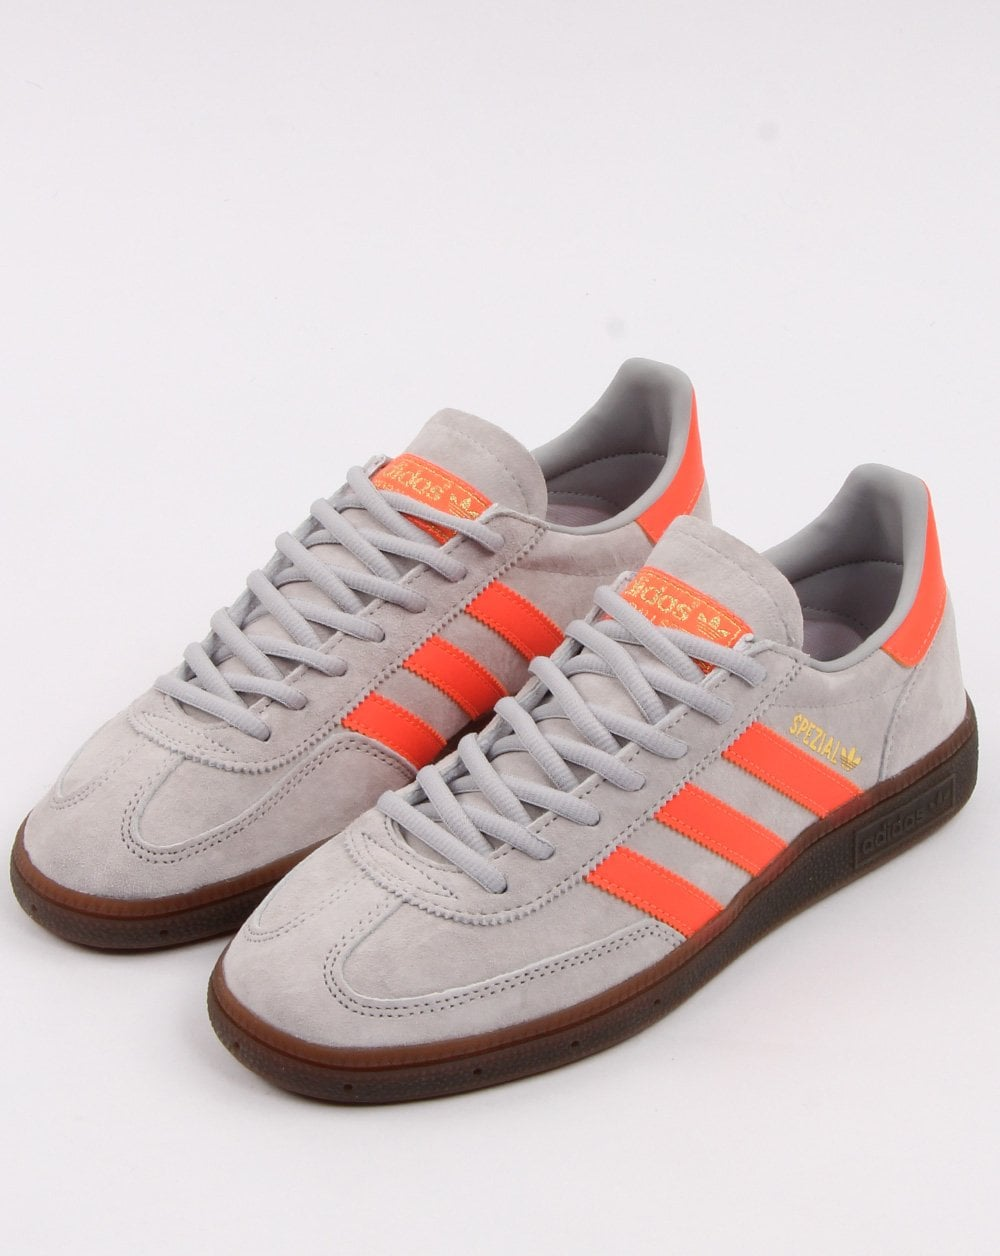 adidas Handball SPEZIAL orange